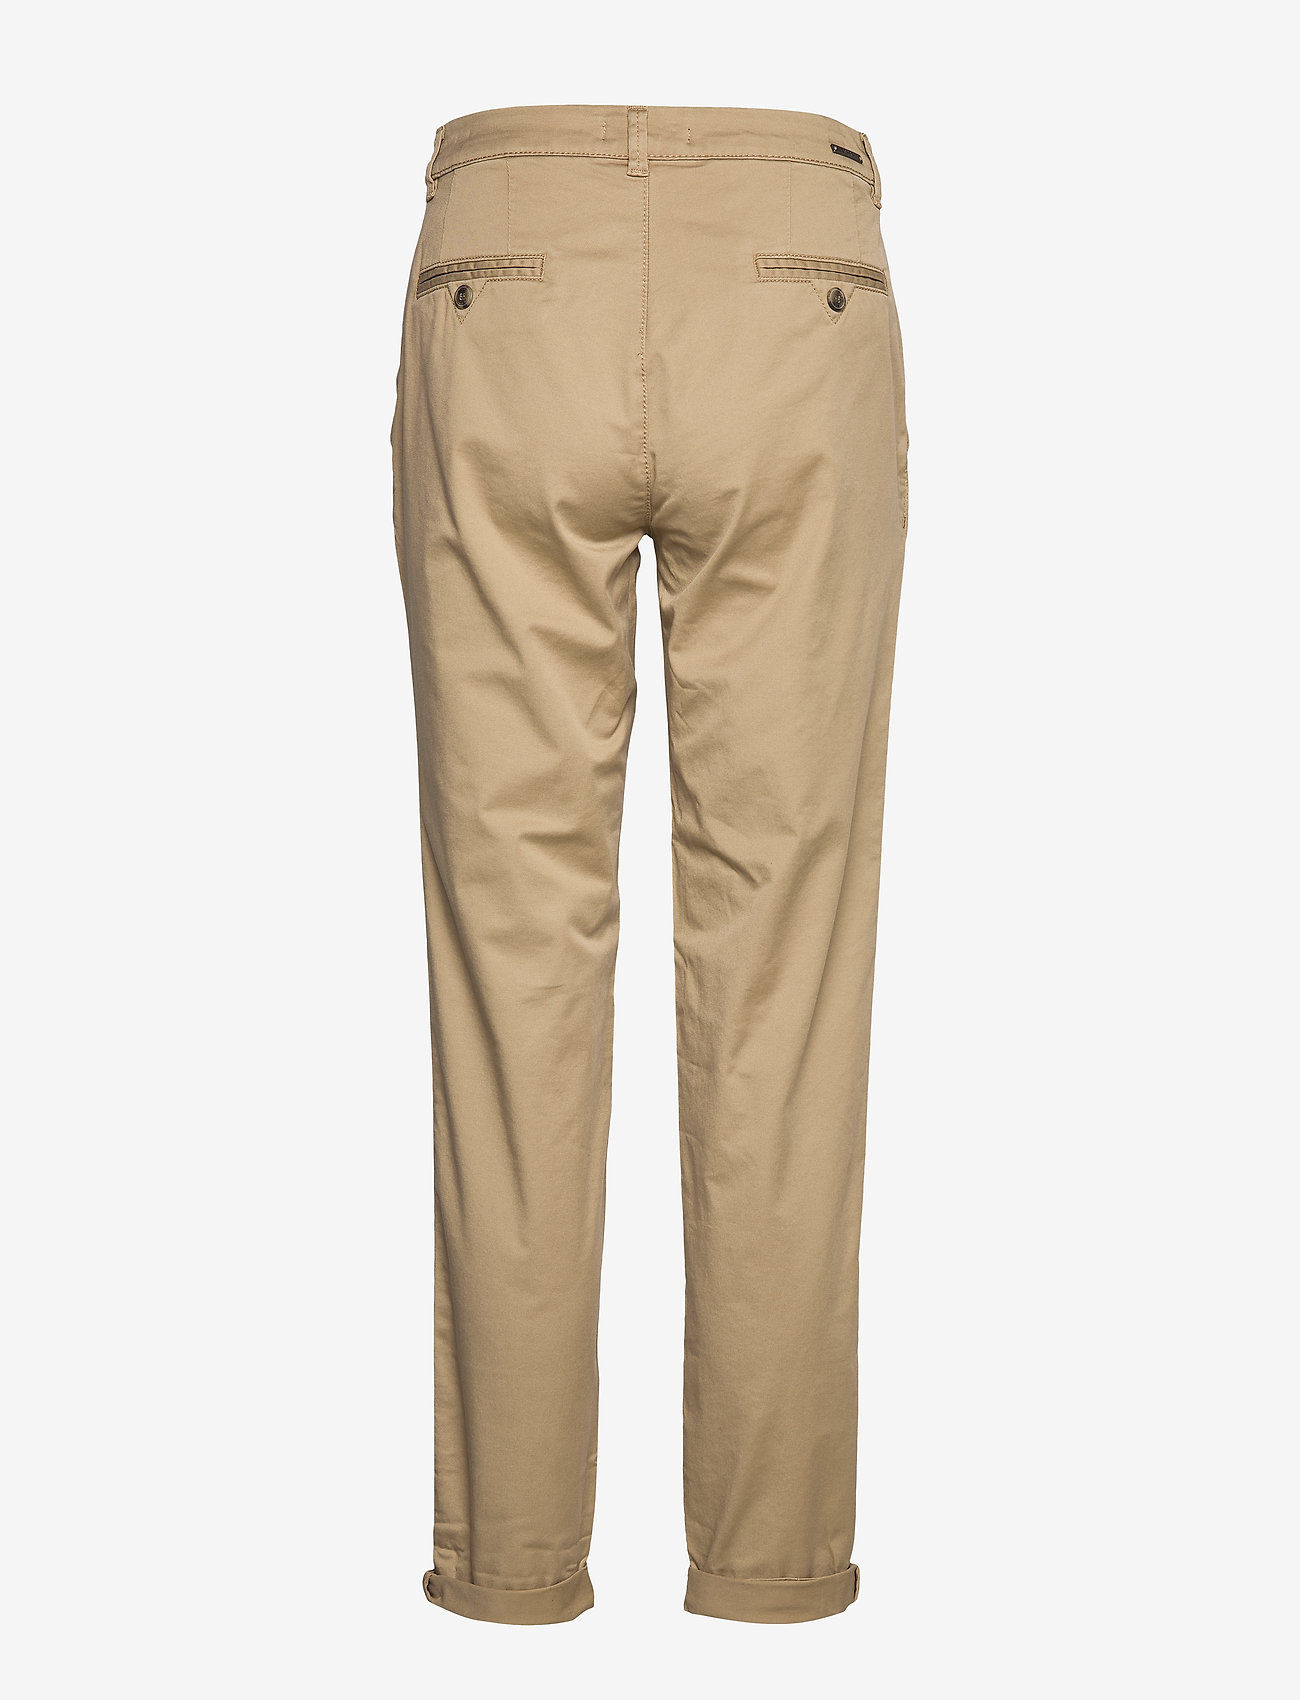 Esprit Casual - Pants woven - chinos - beige - 1